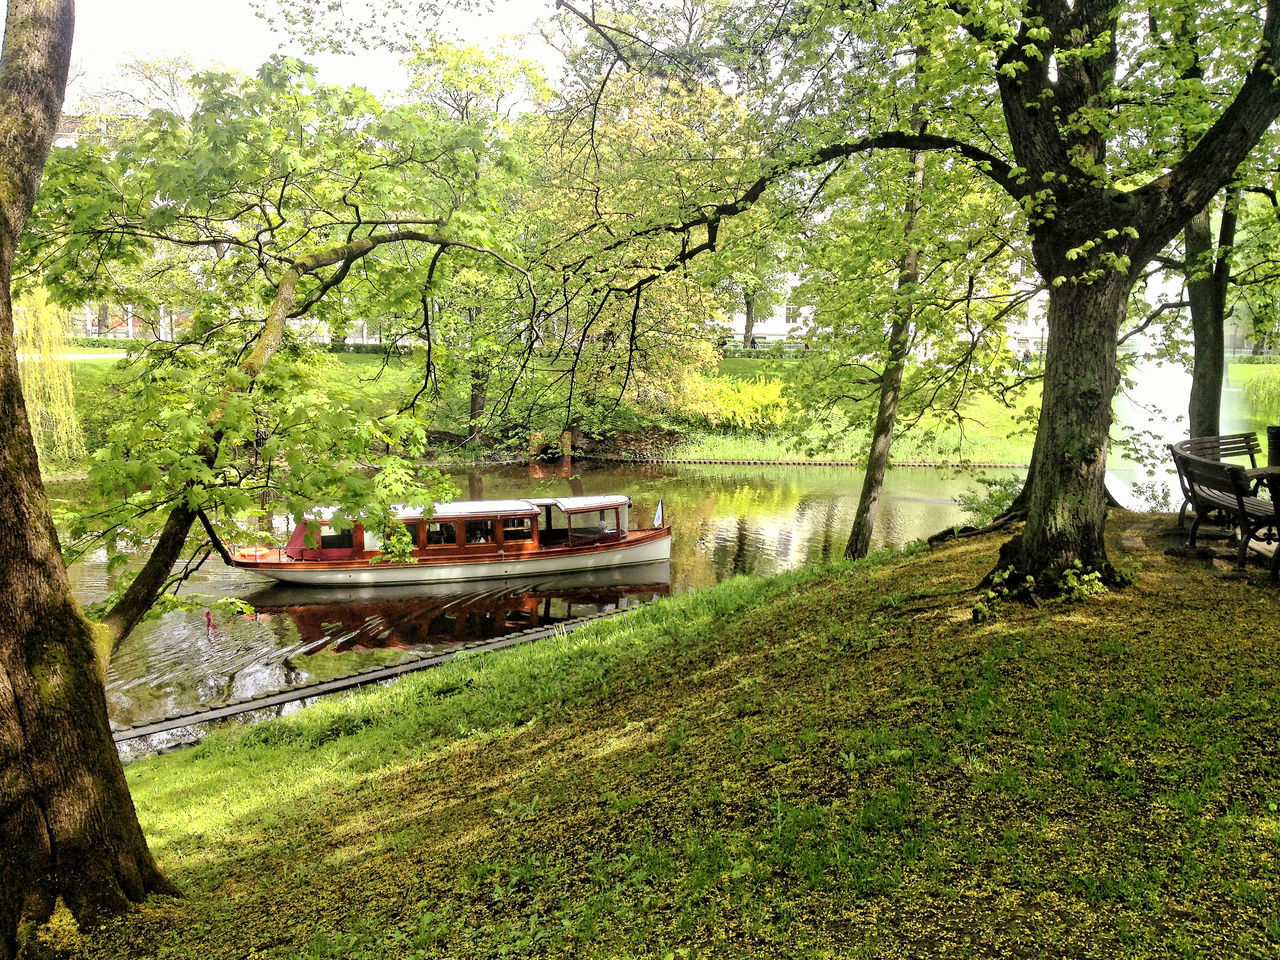 tree, nautical vessel, transportation, water, mode of transport, grass, boat, nature, river, green color, growth, outdoors, no people, day, houseboat, moored, beauty in nature, scenics